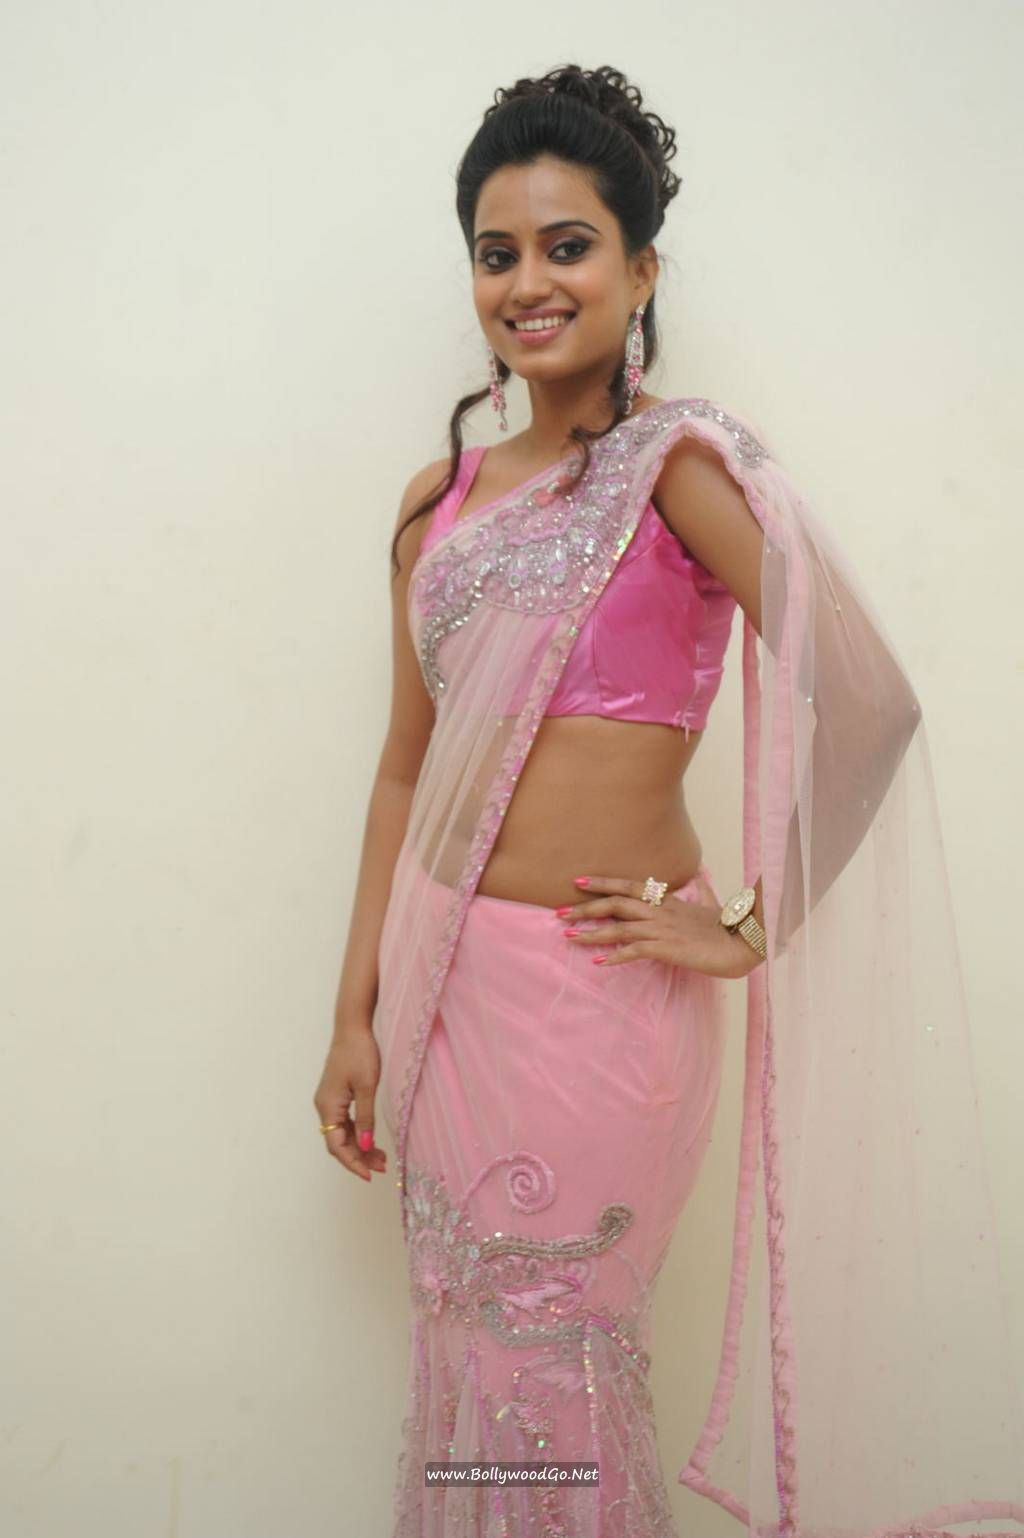 Actress Dimple at Romance Audio Launch Event Acr04hLB